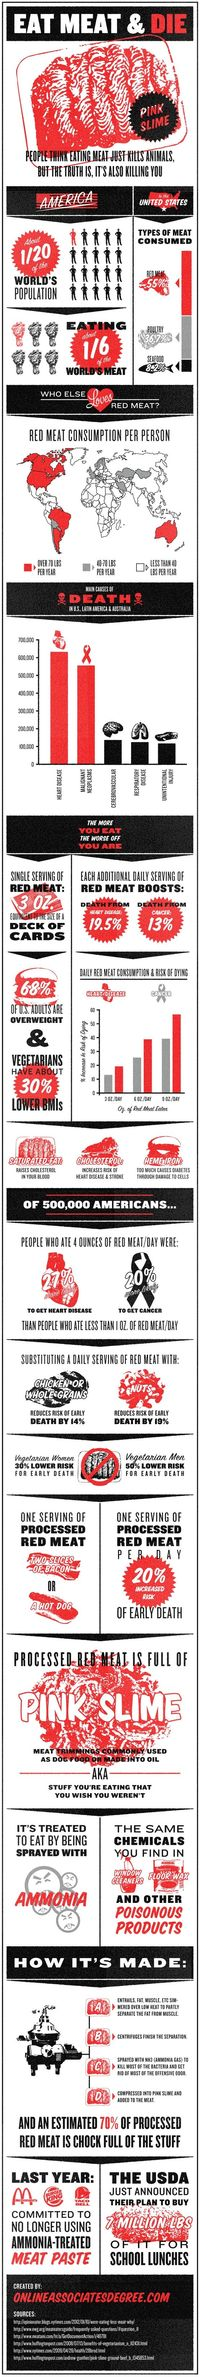 Is red meat killing you? (infographic) it absolutely is!!!!! Go vegan get lots of fruits and veggies my diet consists of 50% fruits 45% veggies and 10-5% nuts fats oils, I believe this is the optimal human diet. Go vegan!